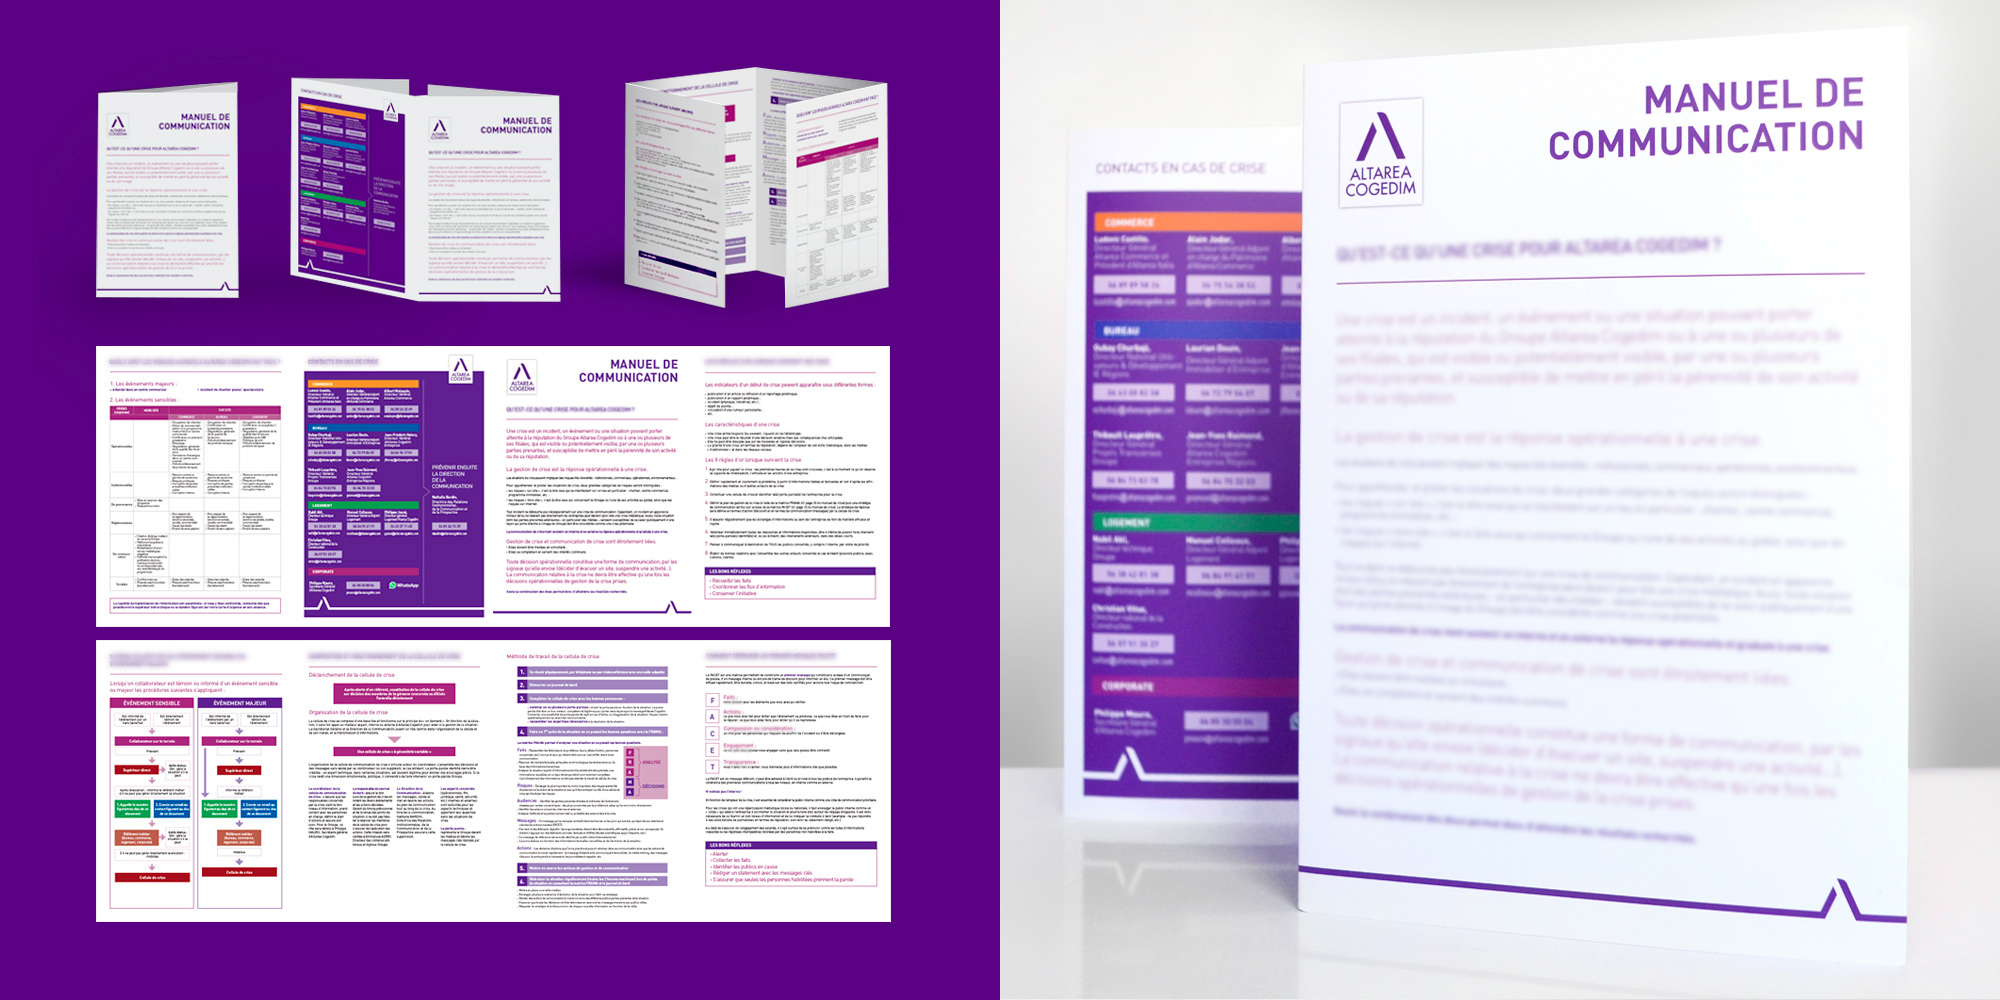 Altarea Cogedim - IDDP - supports print de communication